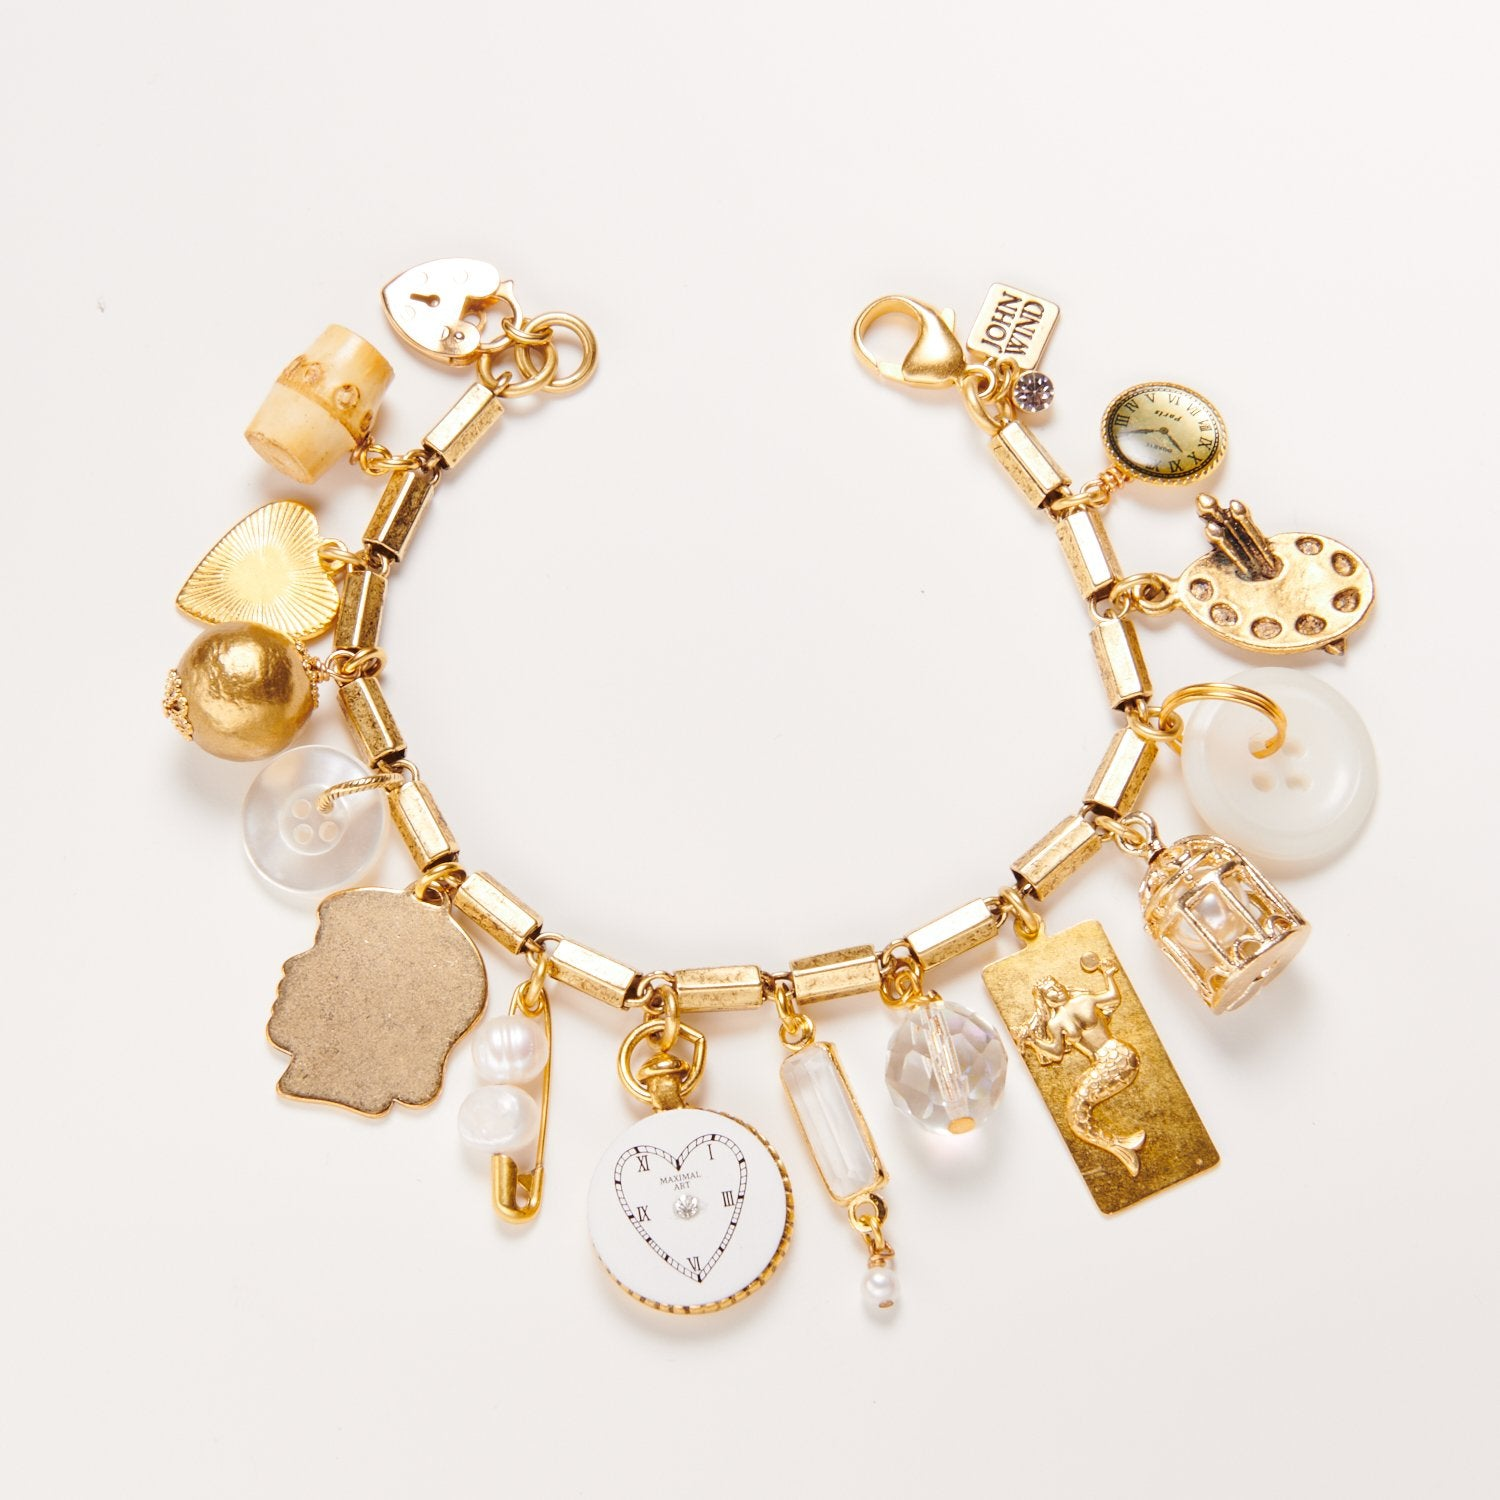 Happily Ever After Charm Bracelet